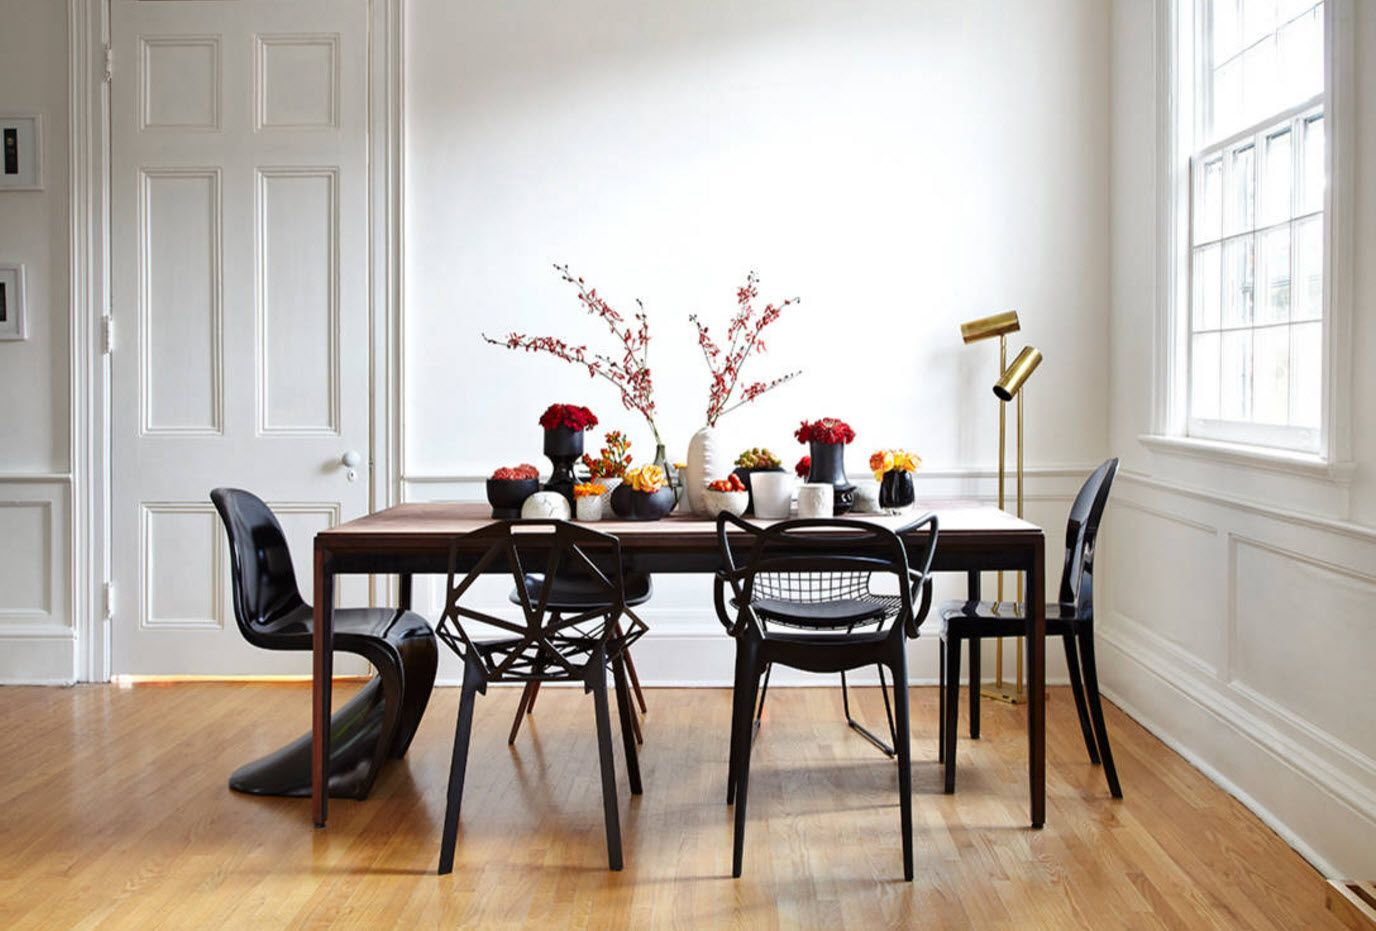 Unique classic setting of the dining room with black furniture and black plastic chair